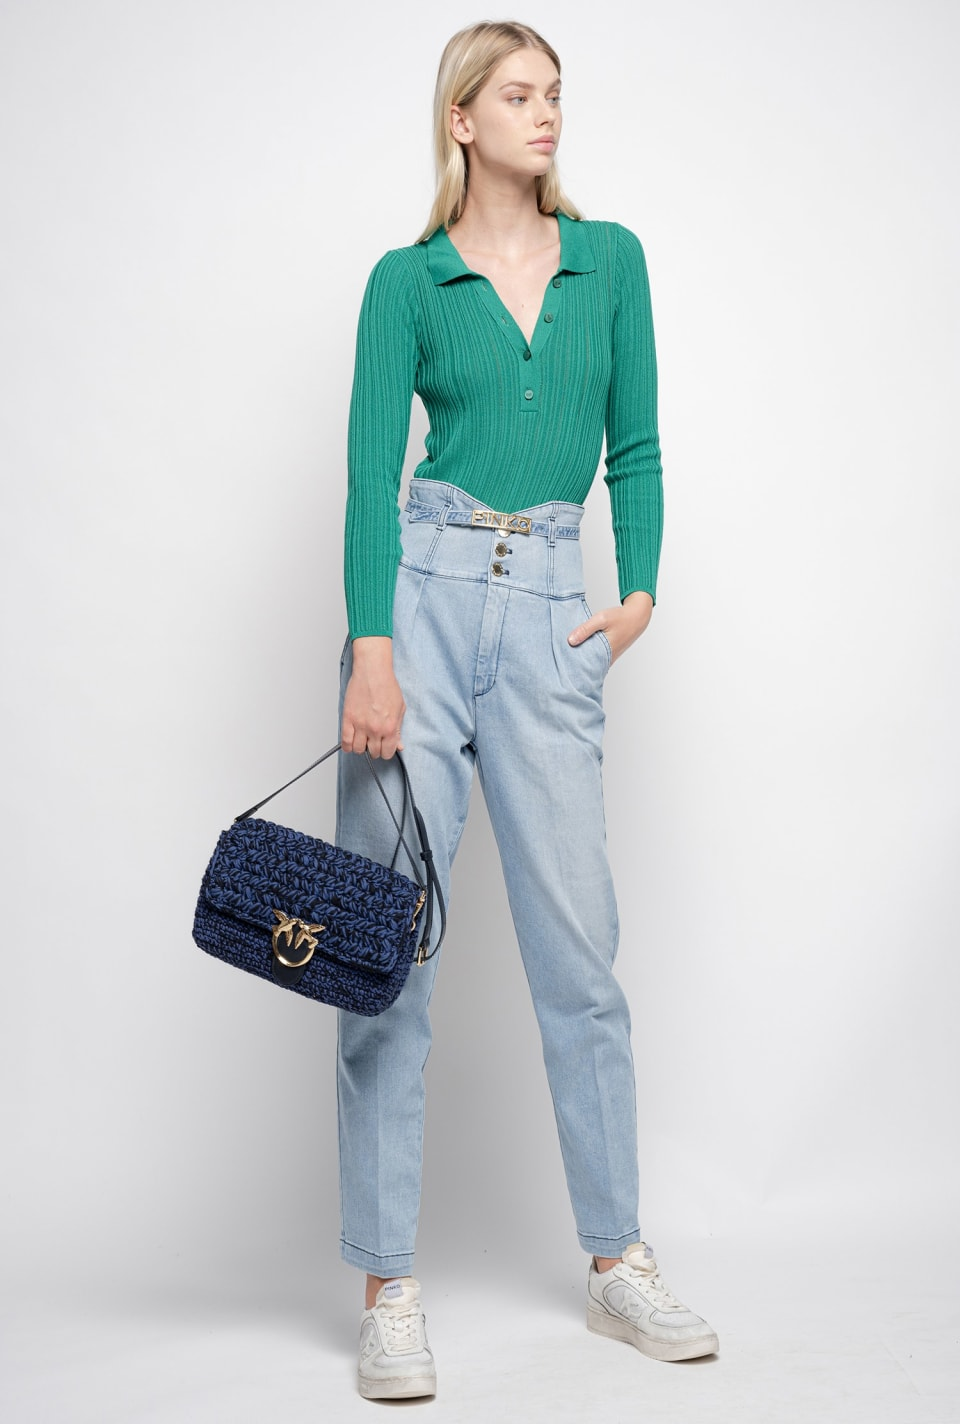 Bustier-style high-waist chino jeans - Pinko